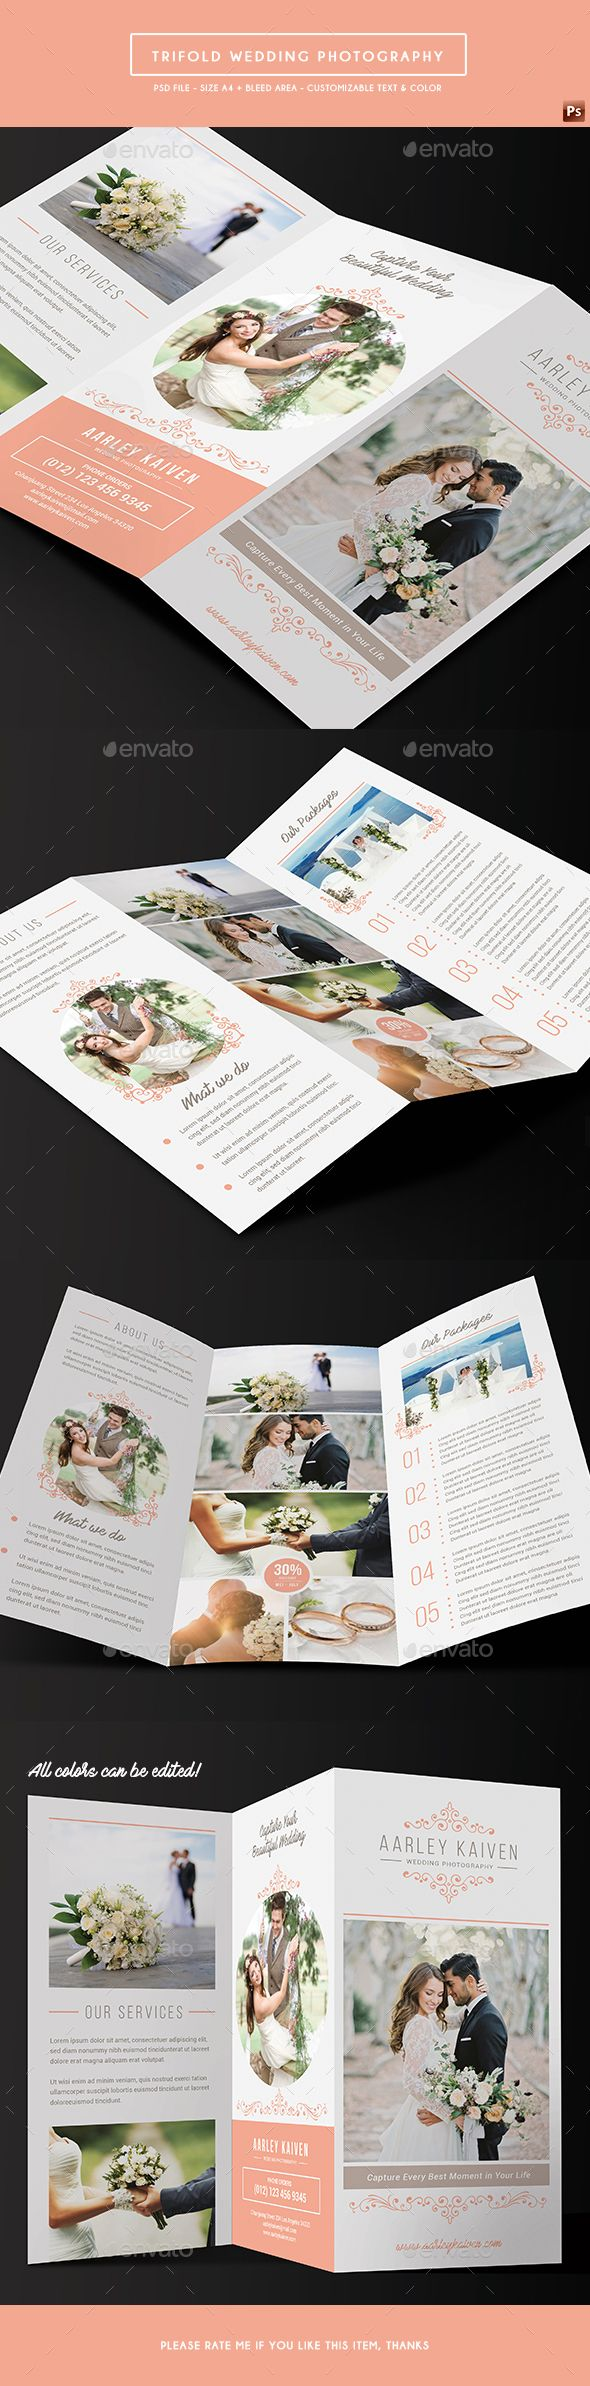 Wedding Photography Trifold — Photoshop PSD #wedding photography #photographer poster • Download ➝ https://graphicriver.net/item/wedding-photography-trifold/19695740?ref=pxcr